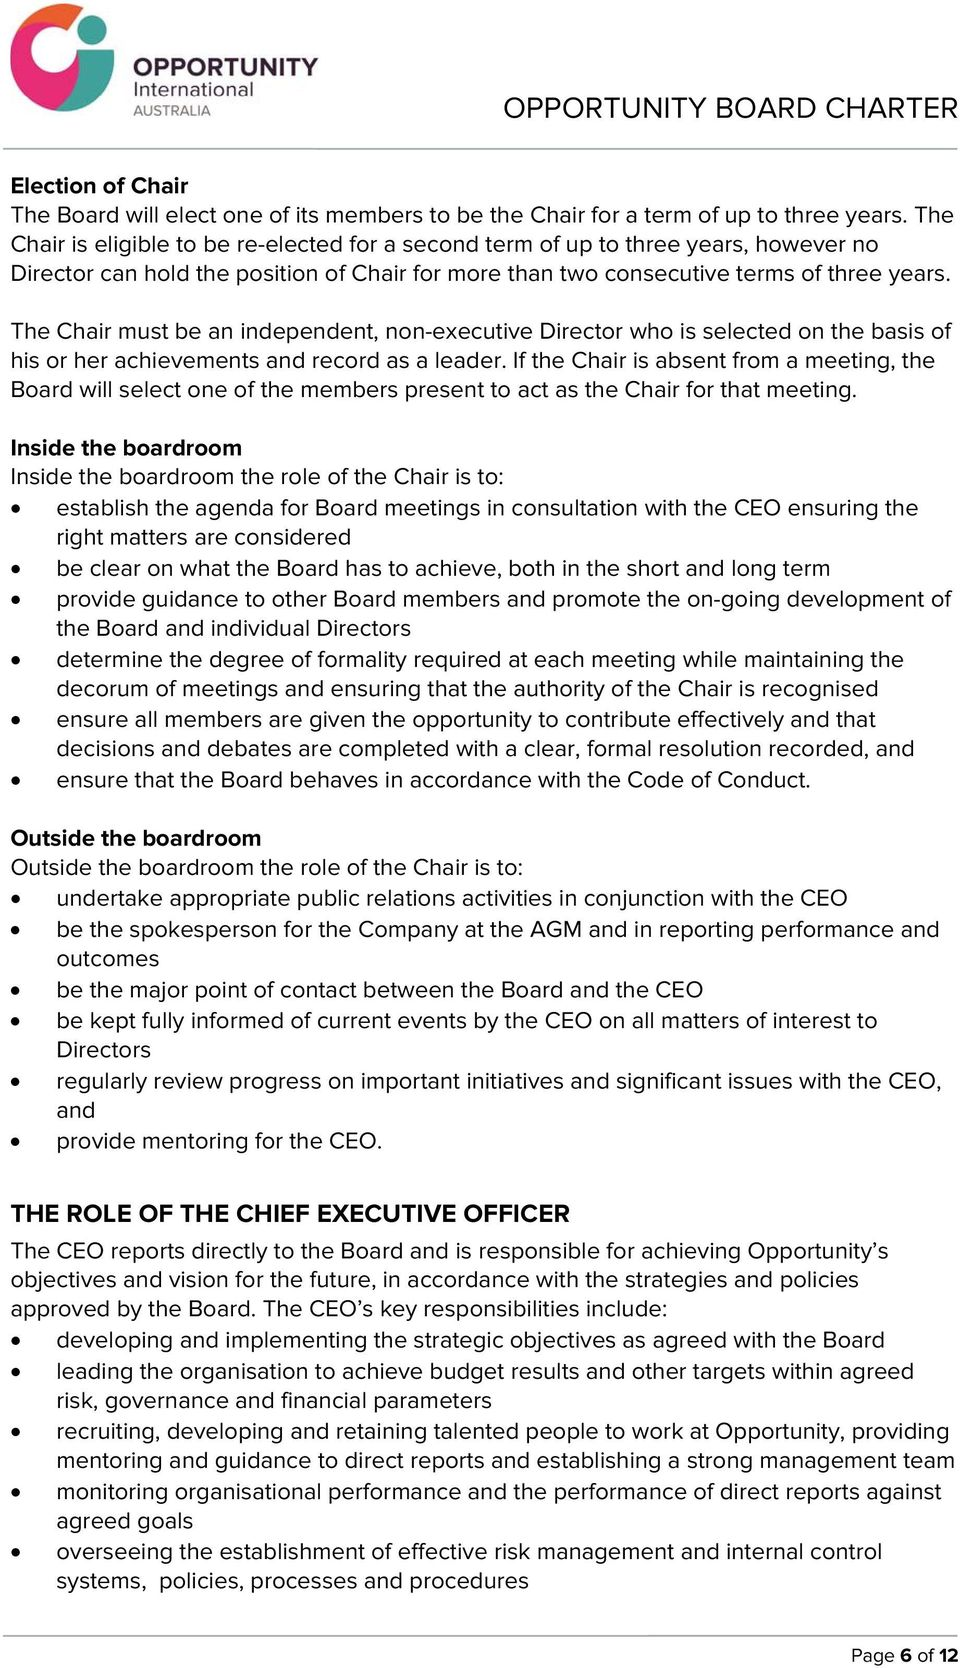 The Chair must be an independent, non-executive Director who is selected on the basis of his or her achievements and record as a leader.